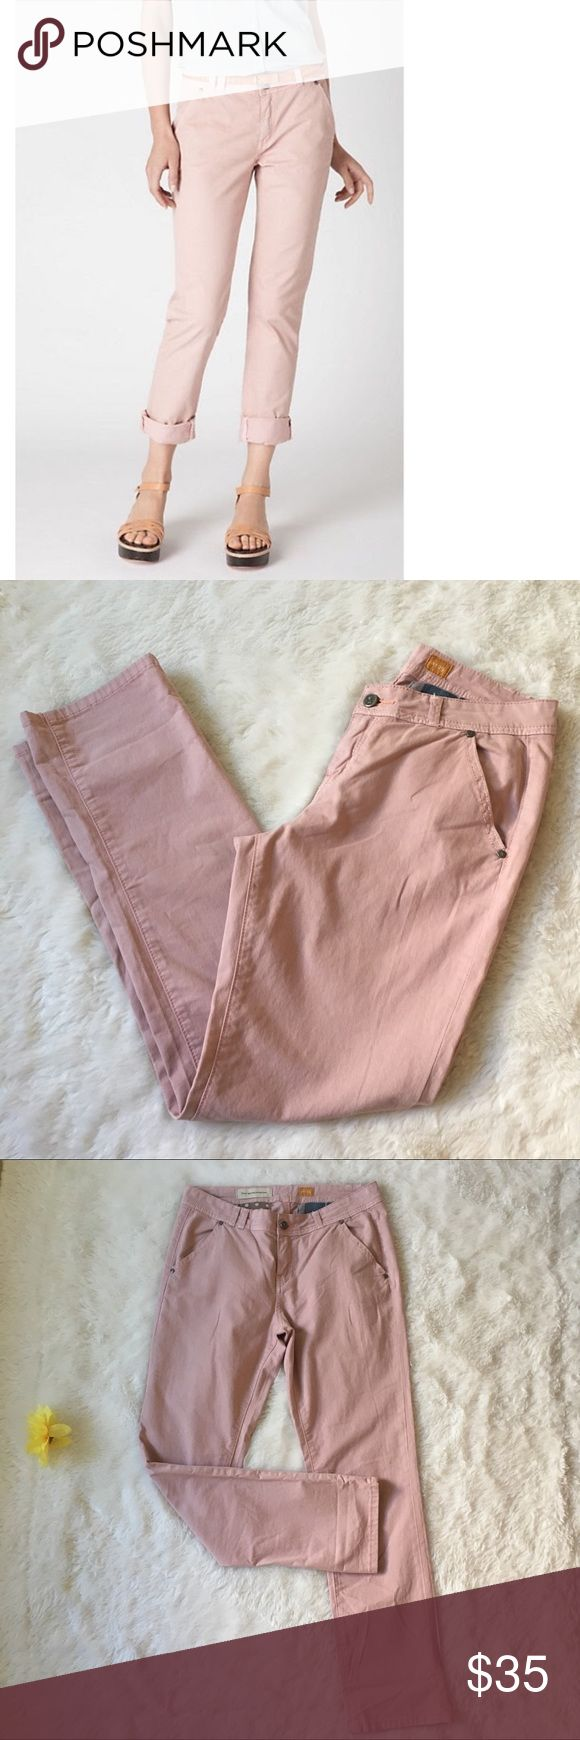 """Anthropologie Pilcro Blush Dusty Pink Pants Sz 29 Pilcro and the Letterpress Boyfriend Style Blush Dusty Pink Pants size 29. Sold at Anthropologie. Measurements when laid flat: 16"""" waist, 9"""" rise, 30.5"""" inseam and 39.5"""" length. Fabric 97& cotton and 3% spandex. Excellent condition. Fast shipping. No modeling or trades. Offers welcome. Bundle to save. Smoke & pet free home. Anthropologie Pants"""